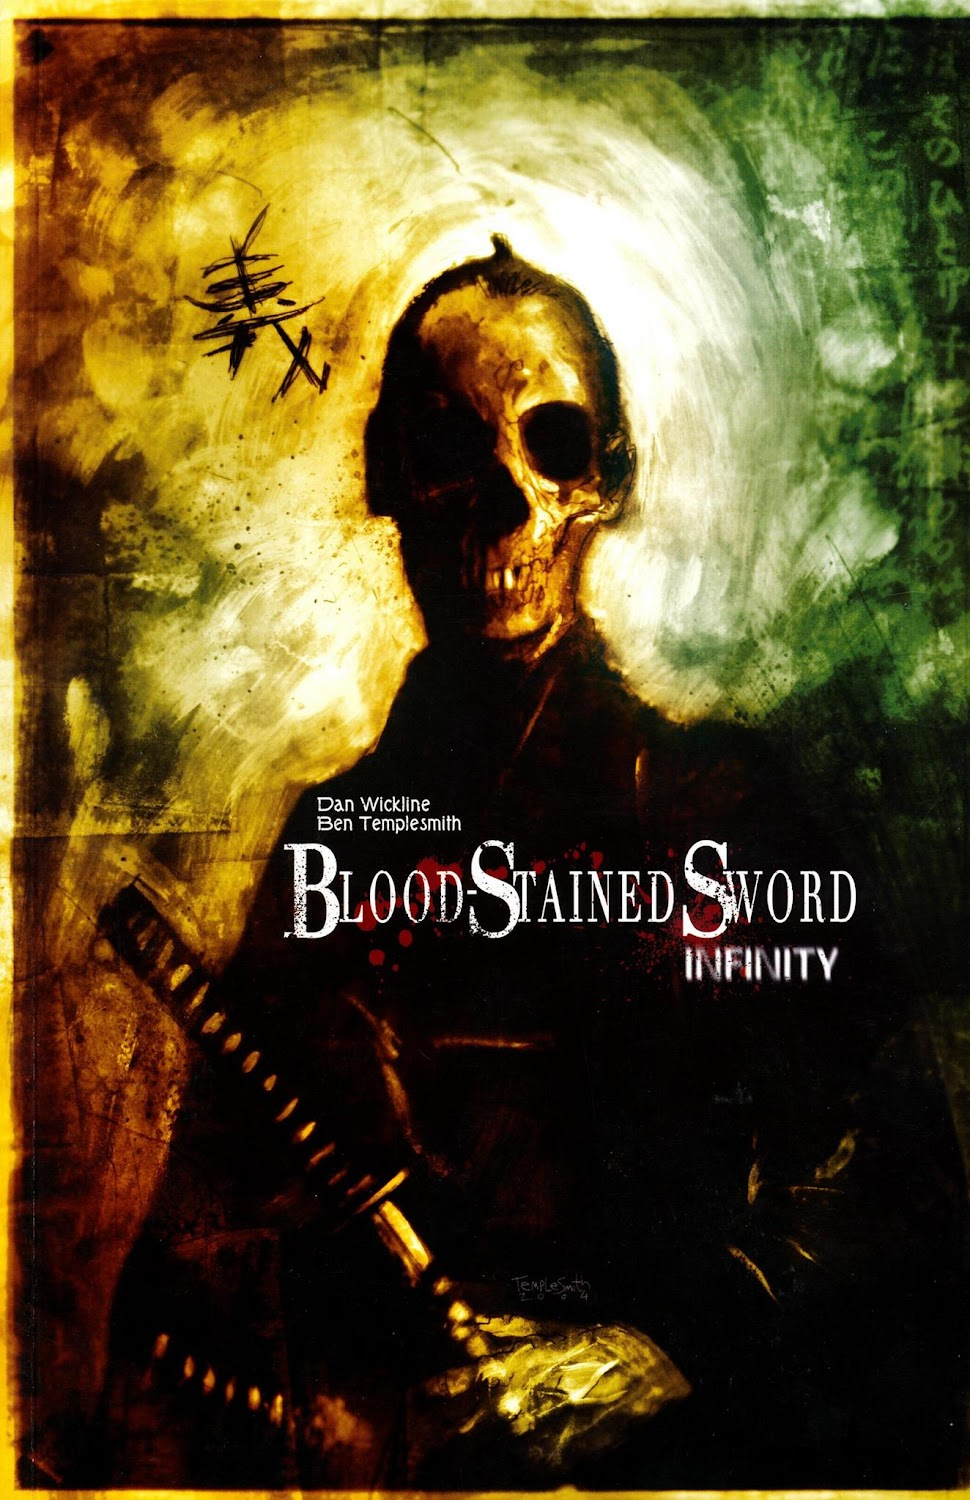 Blood-Stained Sword (2006)